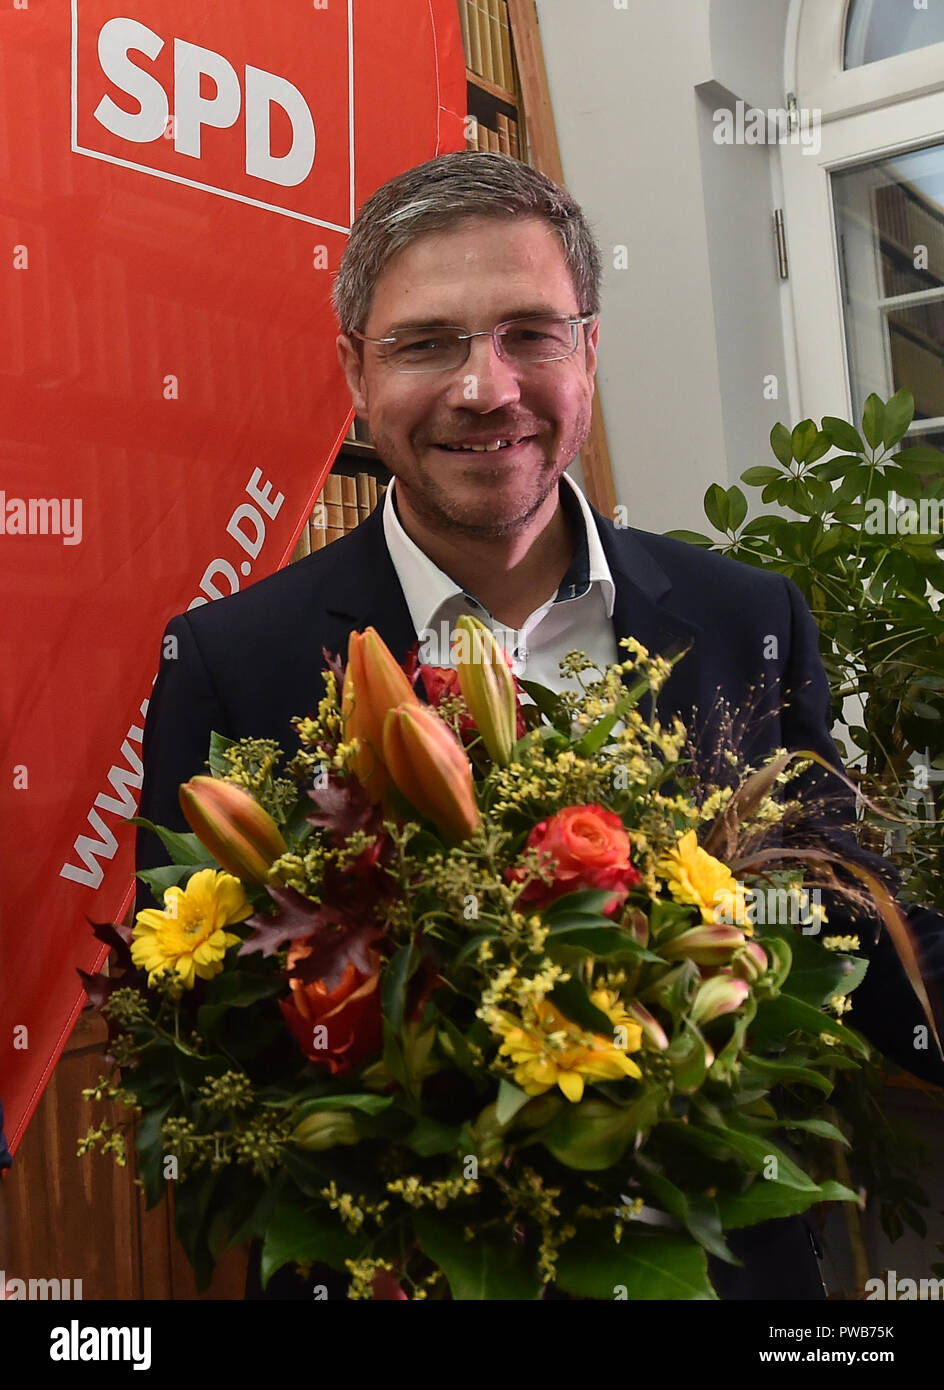 Potsdam, Brandenburg. 14th Oct, 2018. 14 October 2018, Germany, Potsdam: Mike Schubert (SPD) stands at the election party with a bouquet of flowers. He was elected the new Lord Mayor with 55.3 percent of the votes. Credit: Bernd Settnik/dpa-Zen tralbild/dpa/Alamy Live News - Stock Image